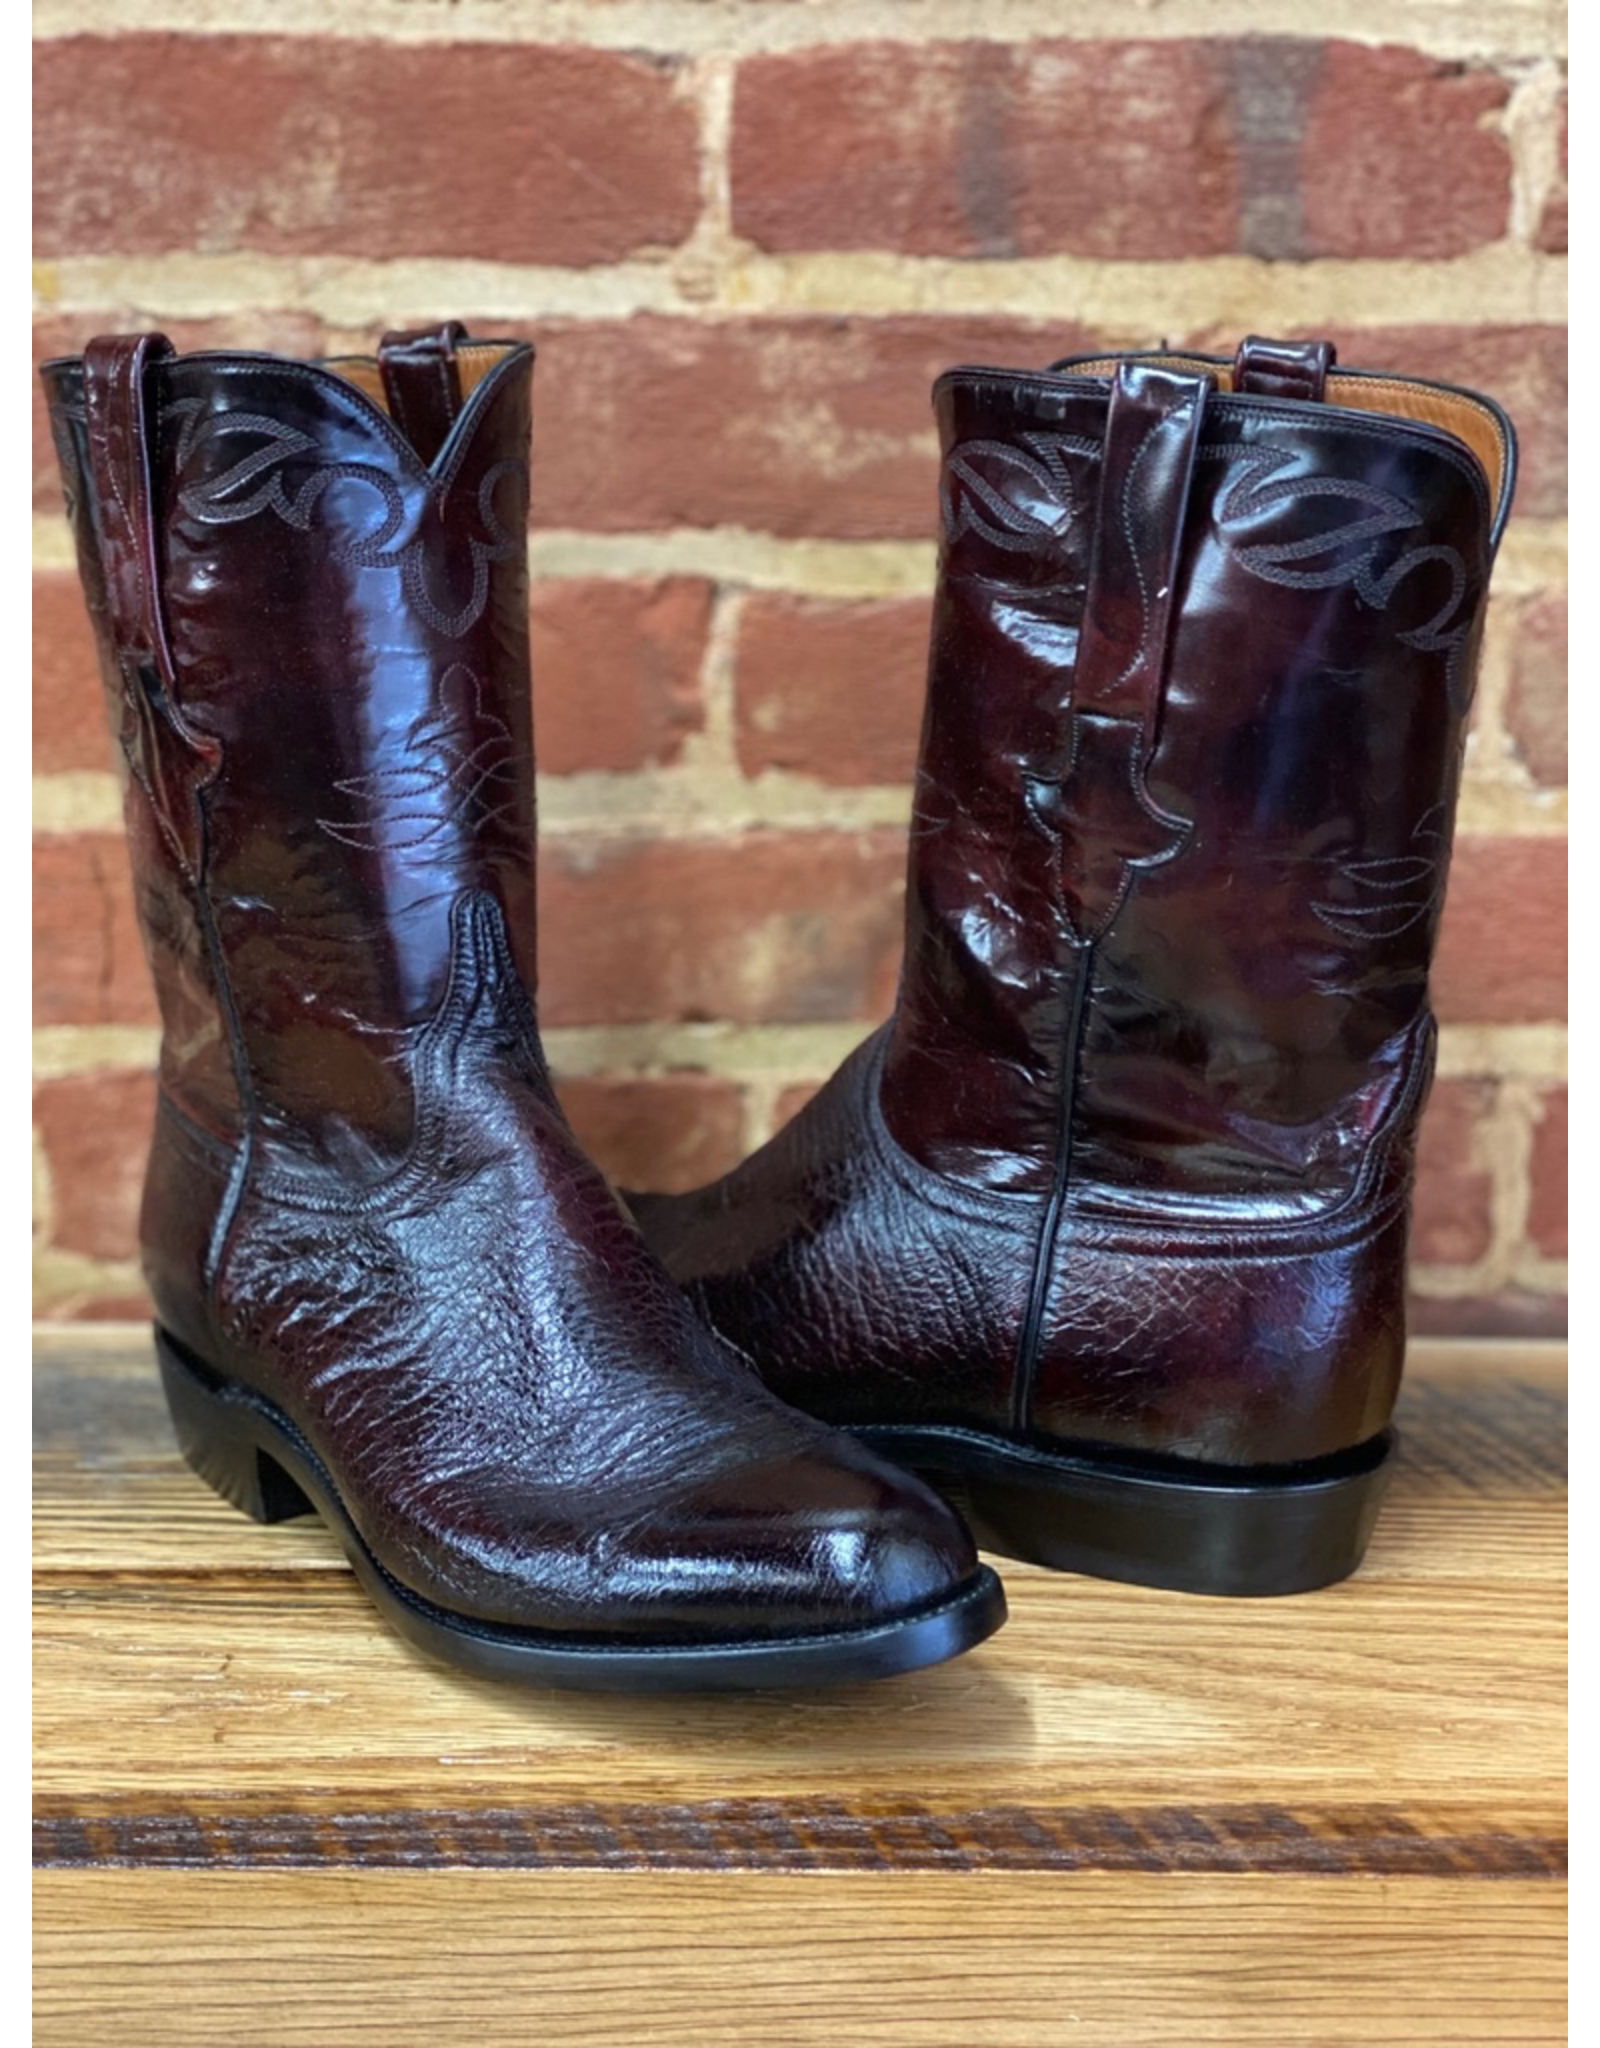 Boots-Men LUCCHESE E1845.RR 10 D Black Cherry Smooth Ostritch